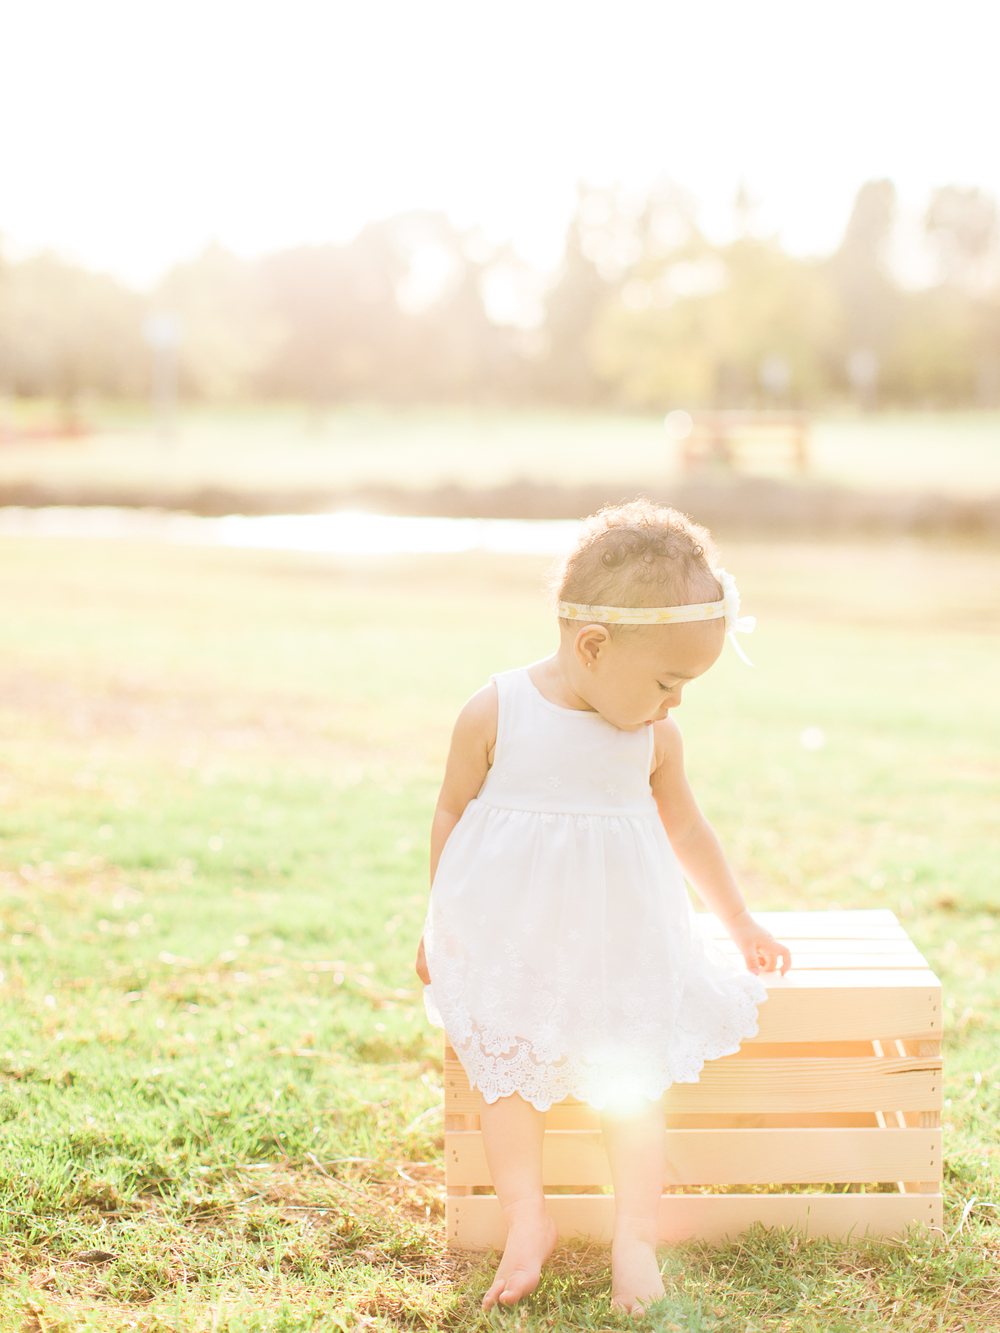 AleiahRei_1stBirthday_Brandon J Ferlin Photography-53.jpg